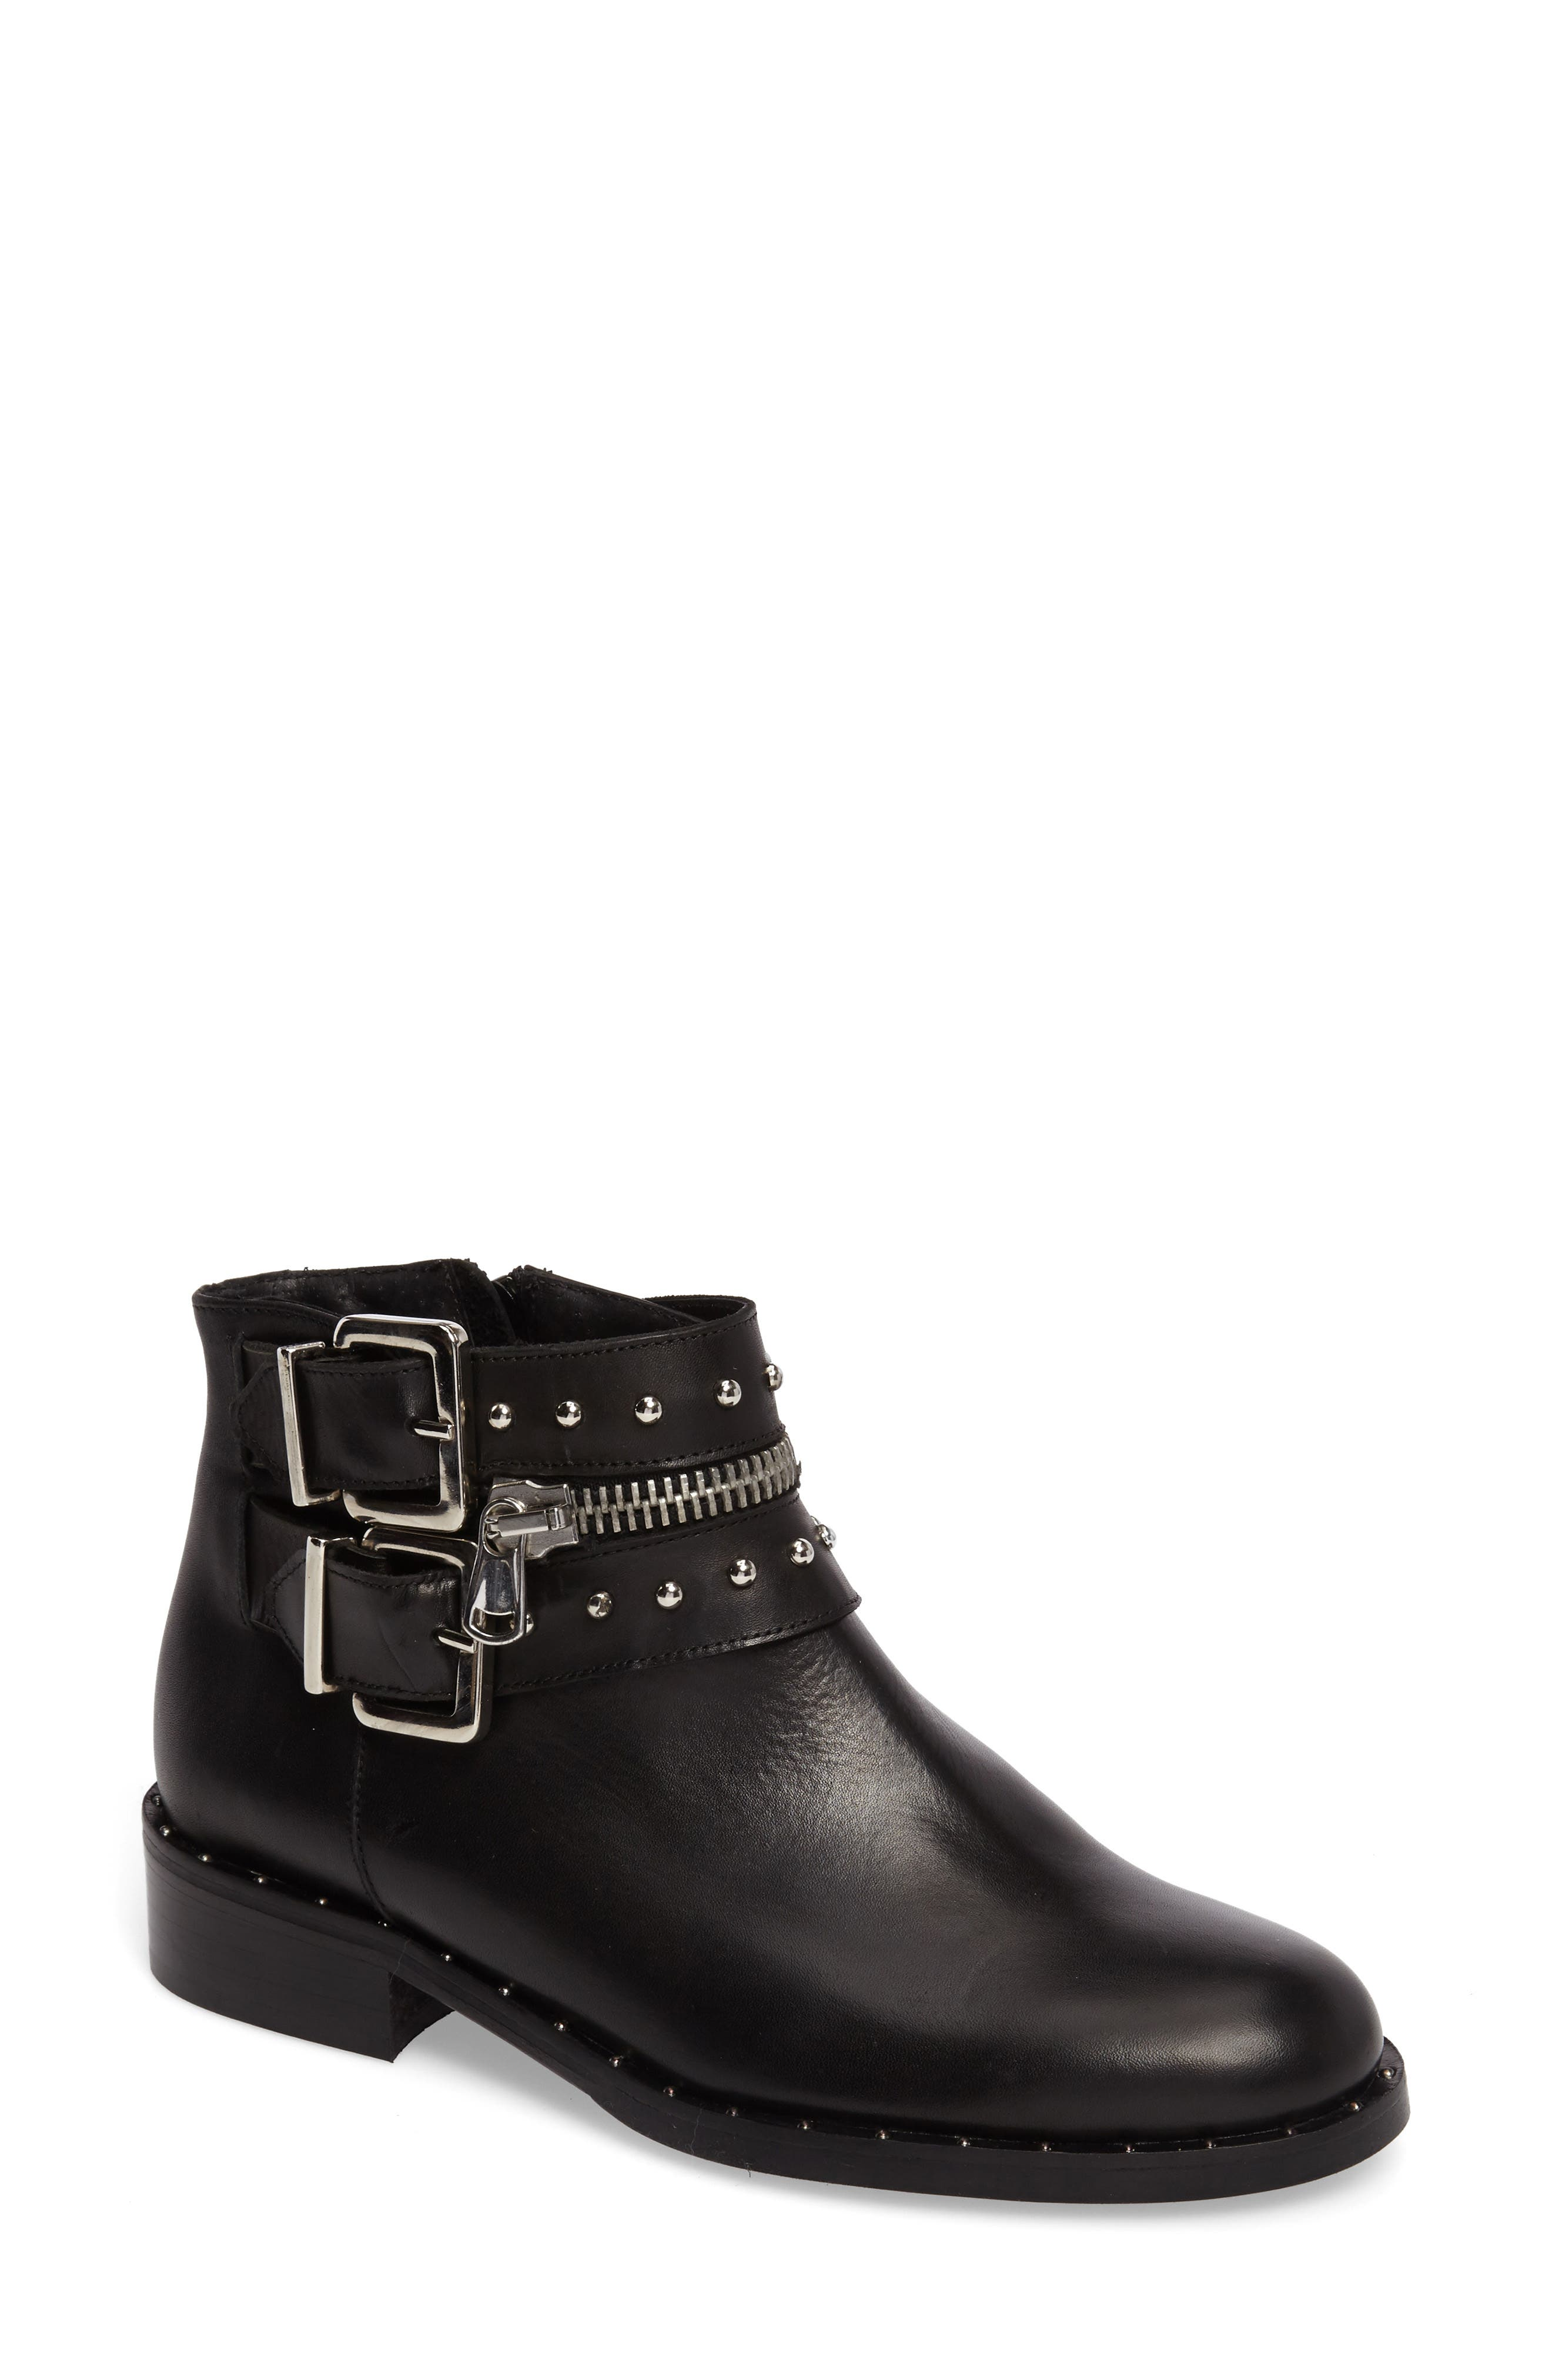 Chief Buckle Bootie,                             Main thumbnail 1, color,                             001